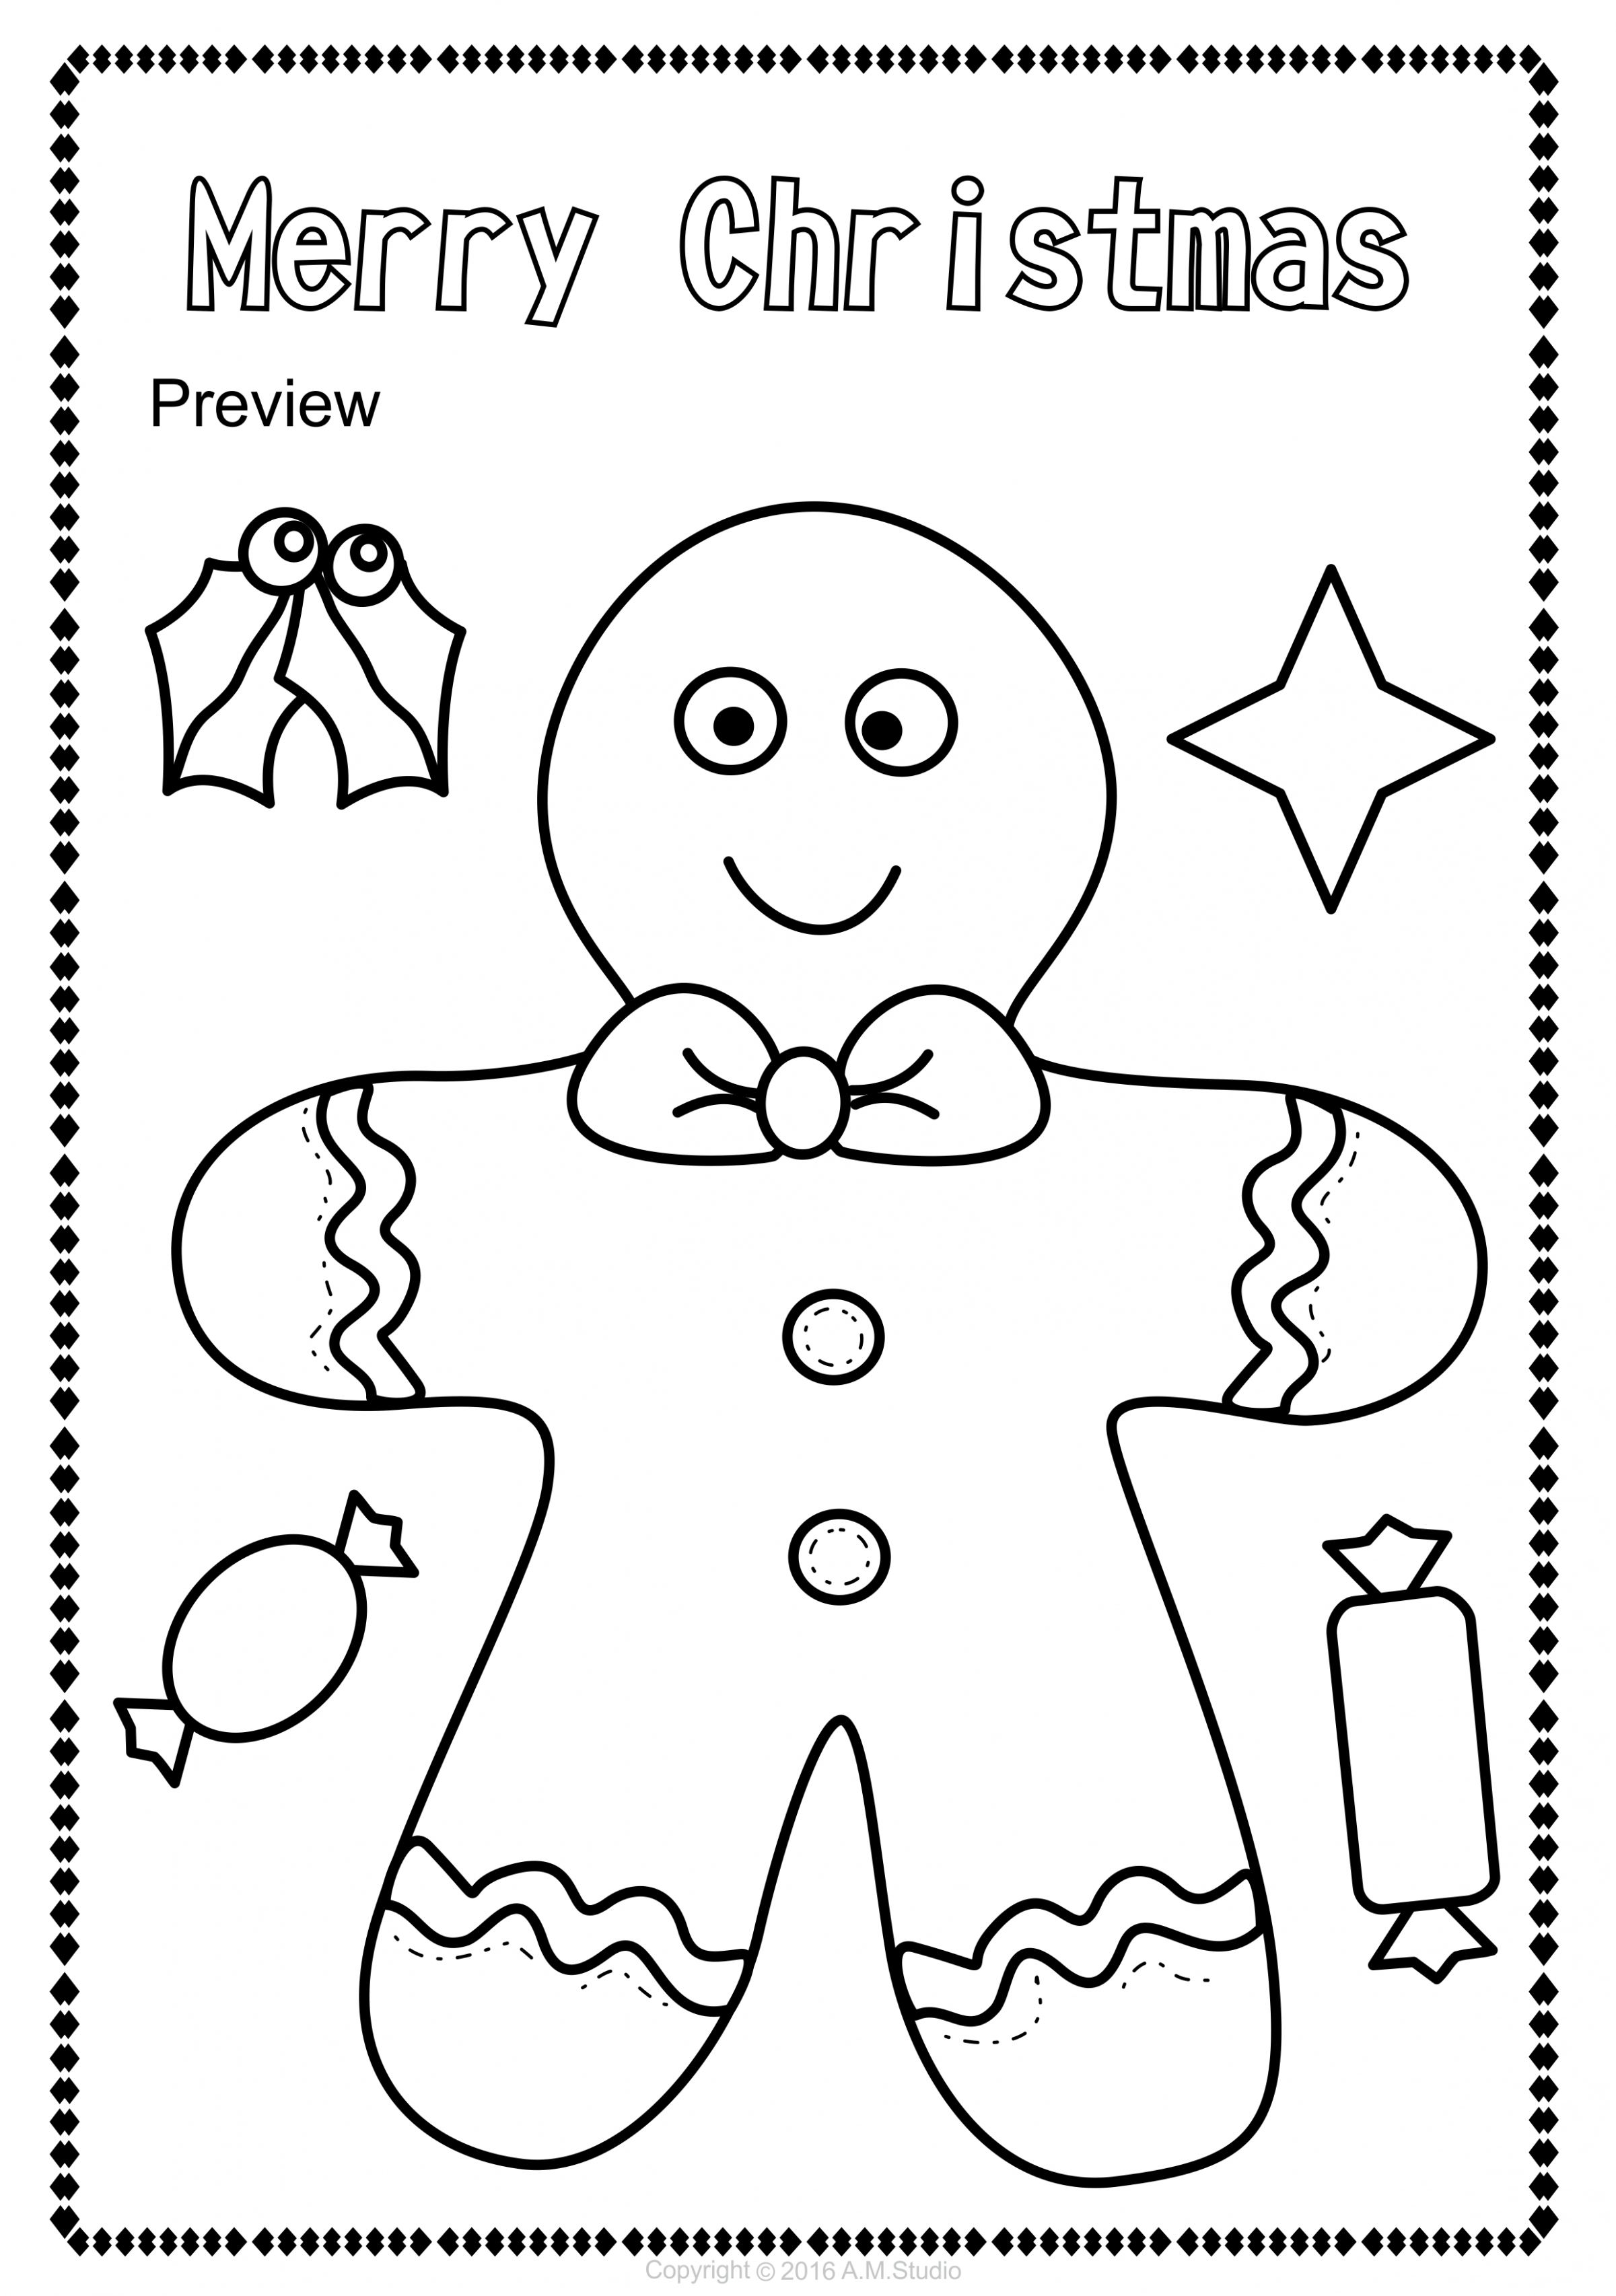 Coloring Ideas : Christmas Coloring Worksheets Coloring Ideass